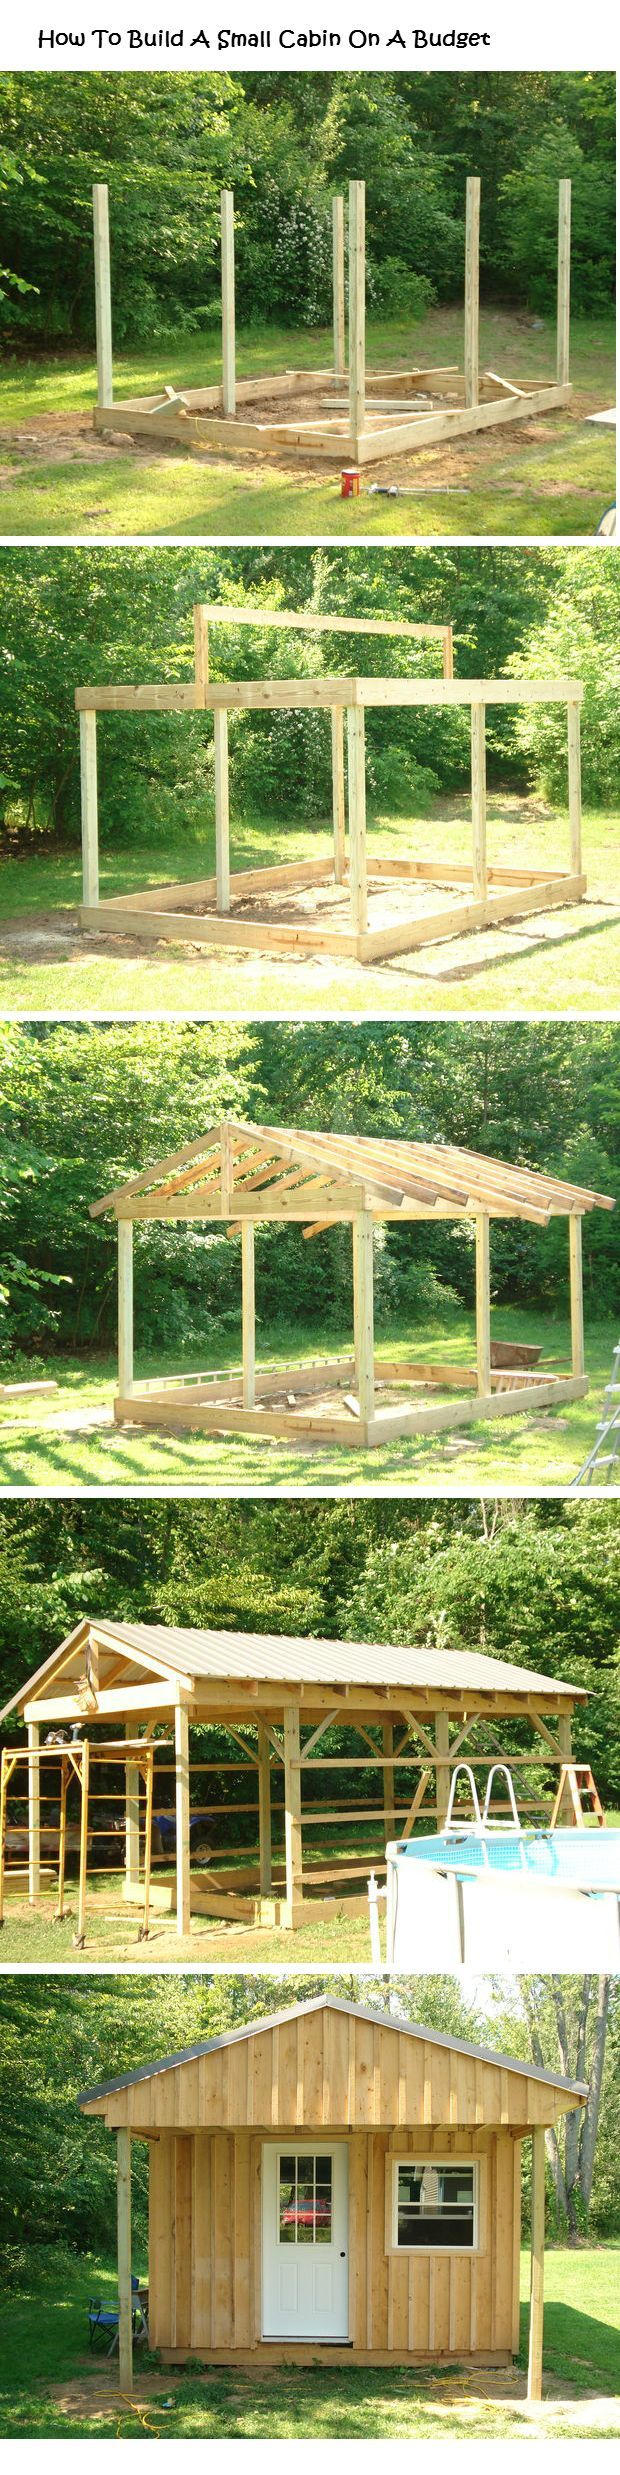 Now we just need a small strip of lakefront property! :D  -  How To Build a Small Cabin on a Budget